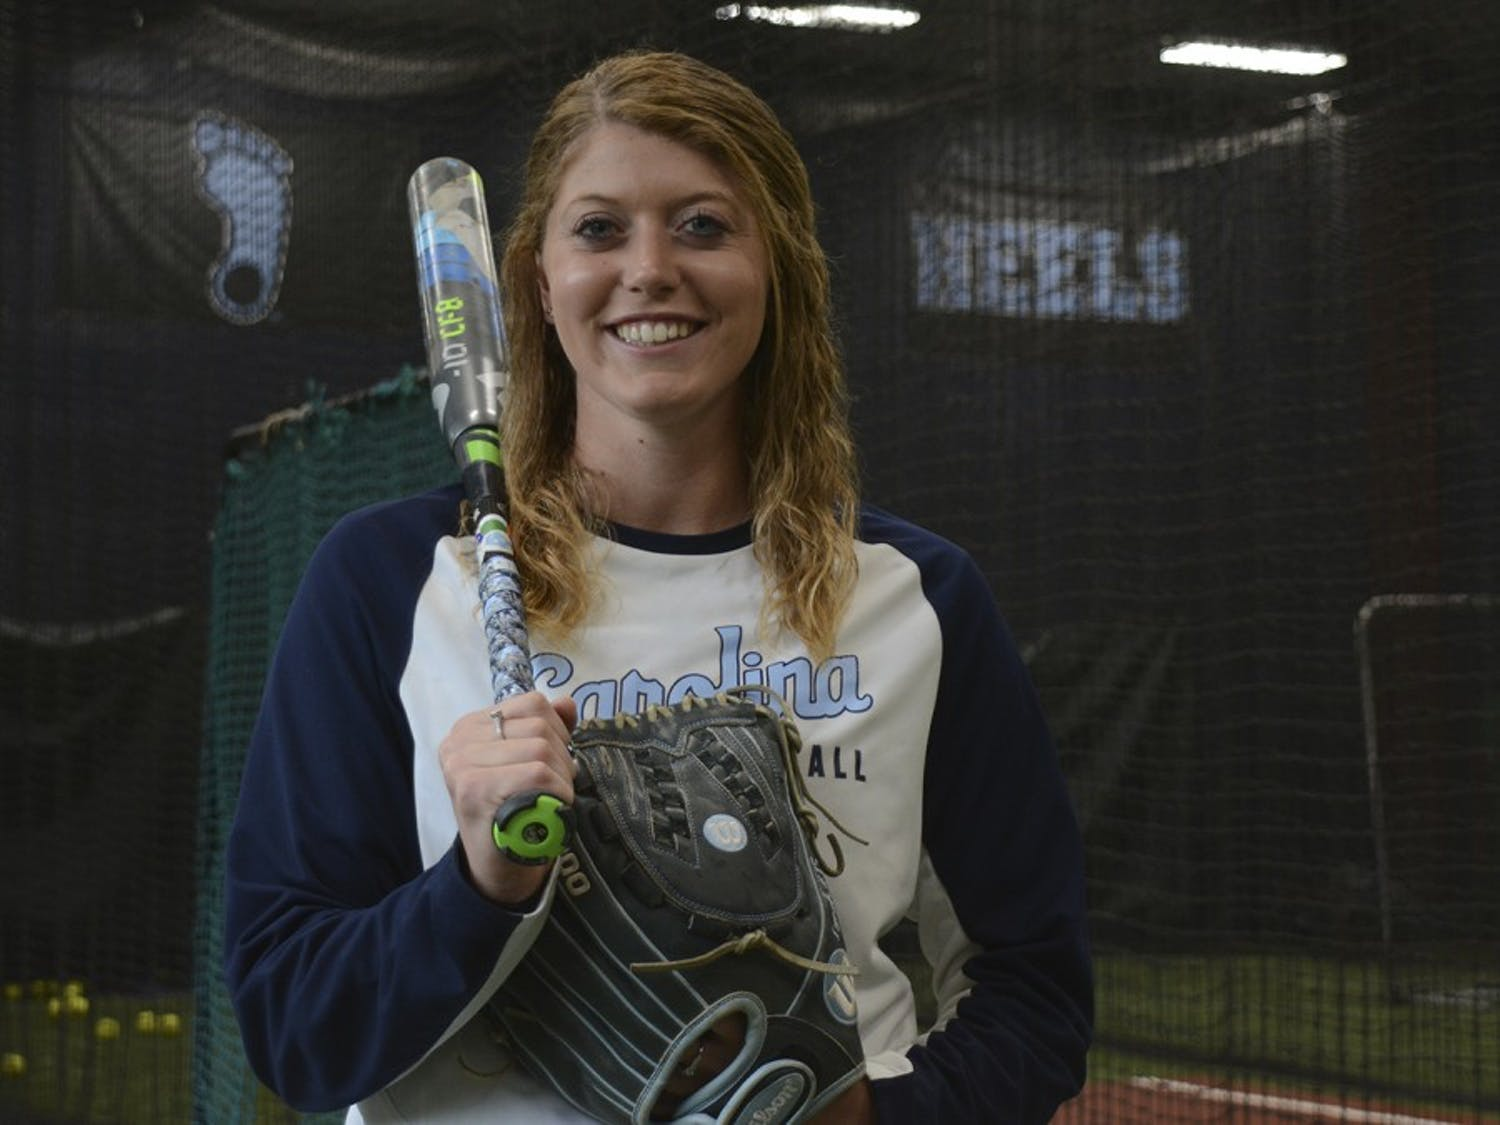 Kendra Lynch, a North Carolina softball pitcher, has excelled both at the plate and in the circle in her four years at UNC.